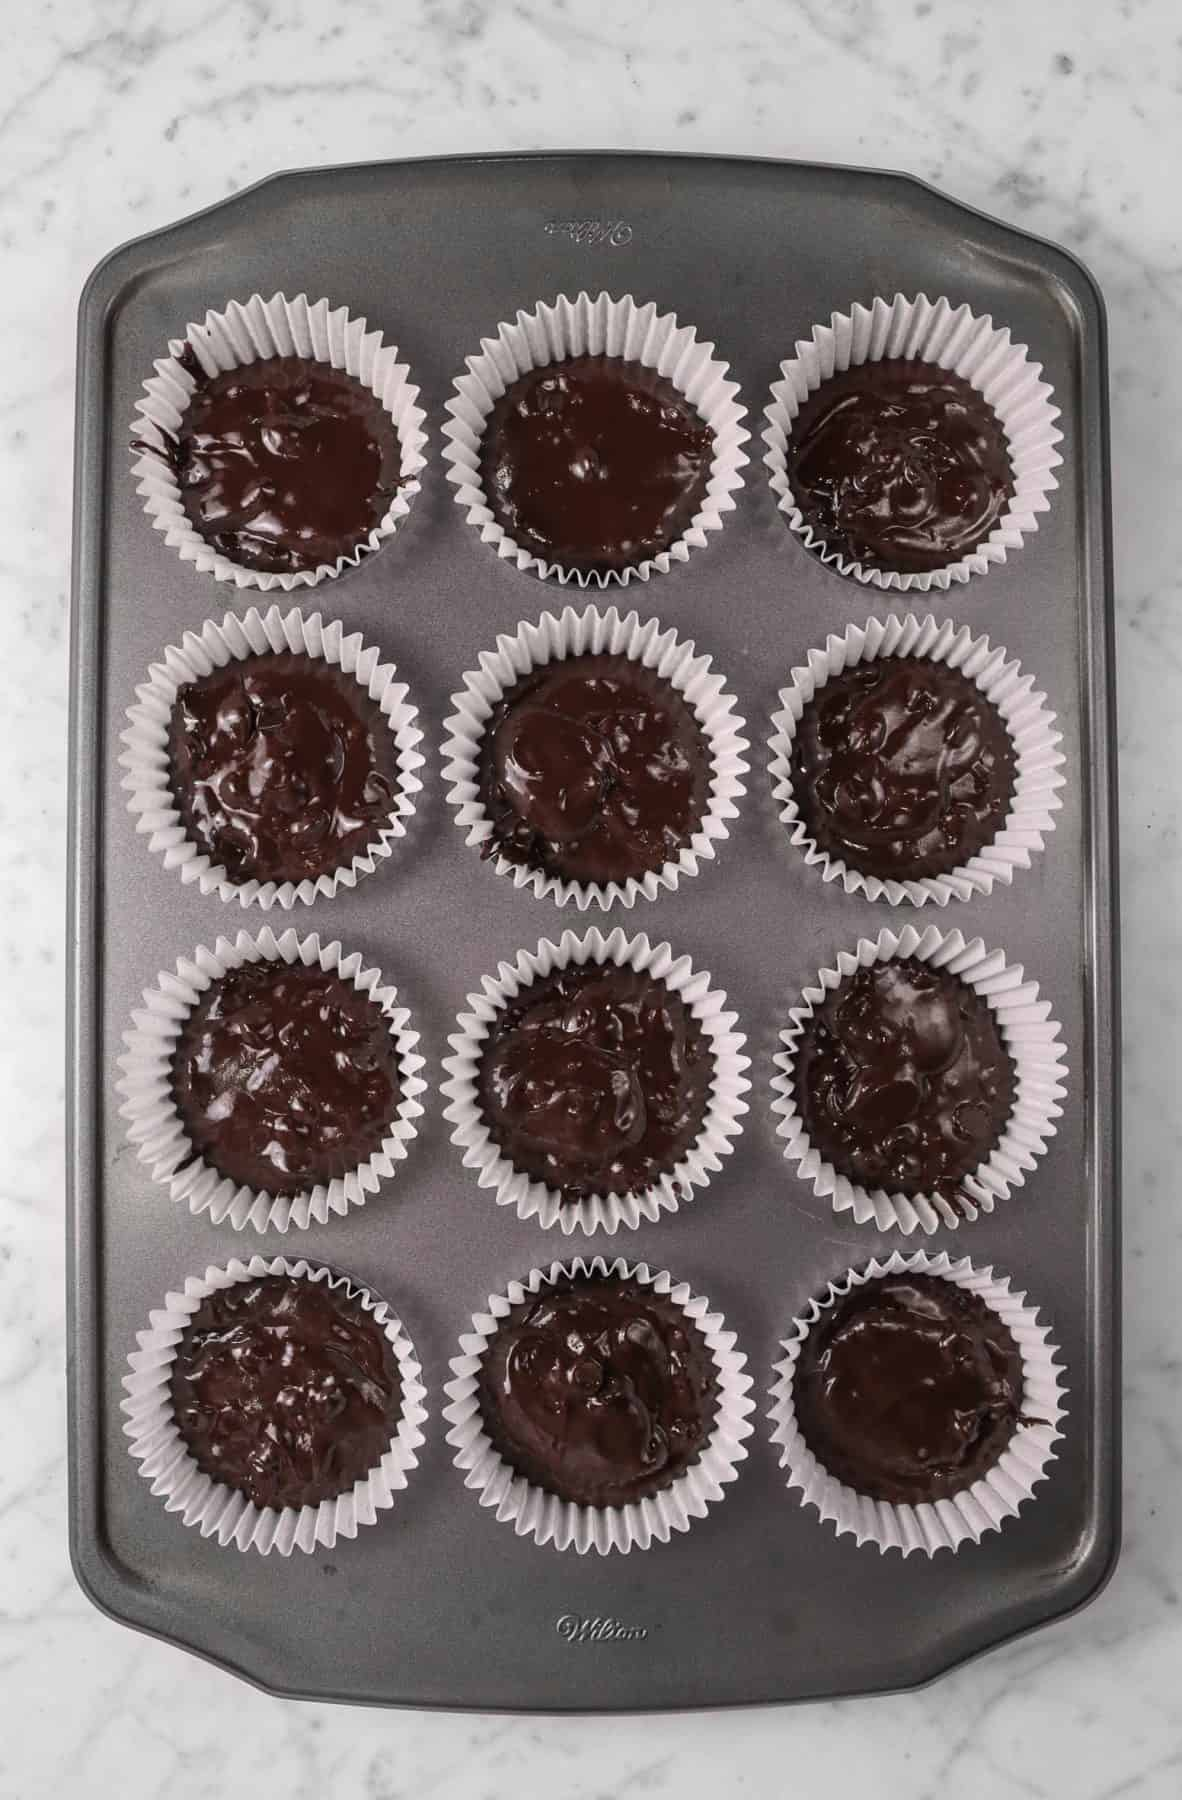 batter added to muffin tins on a marble counter